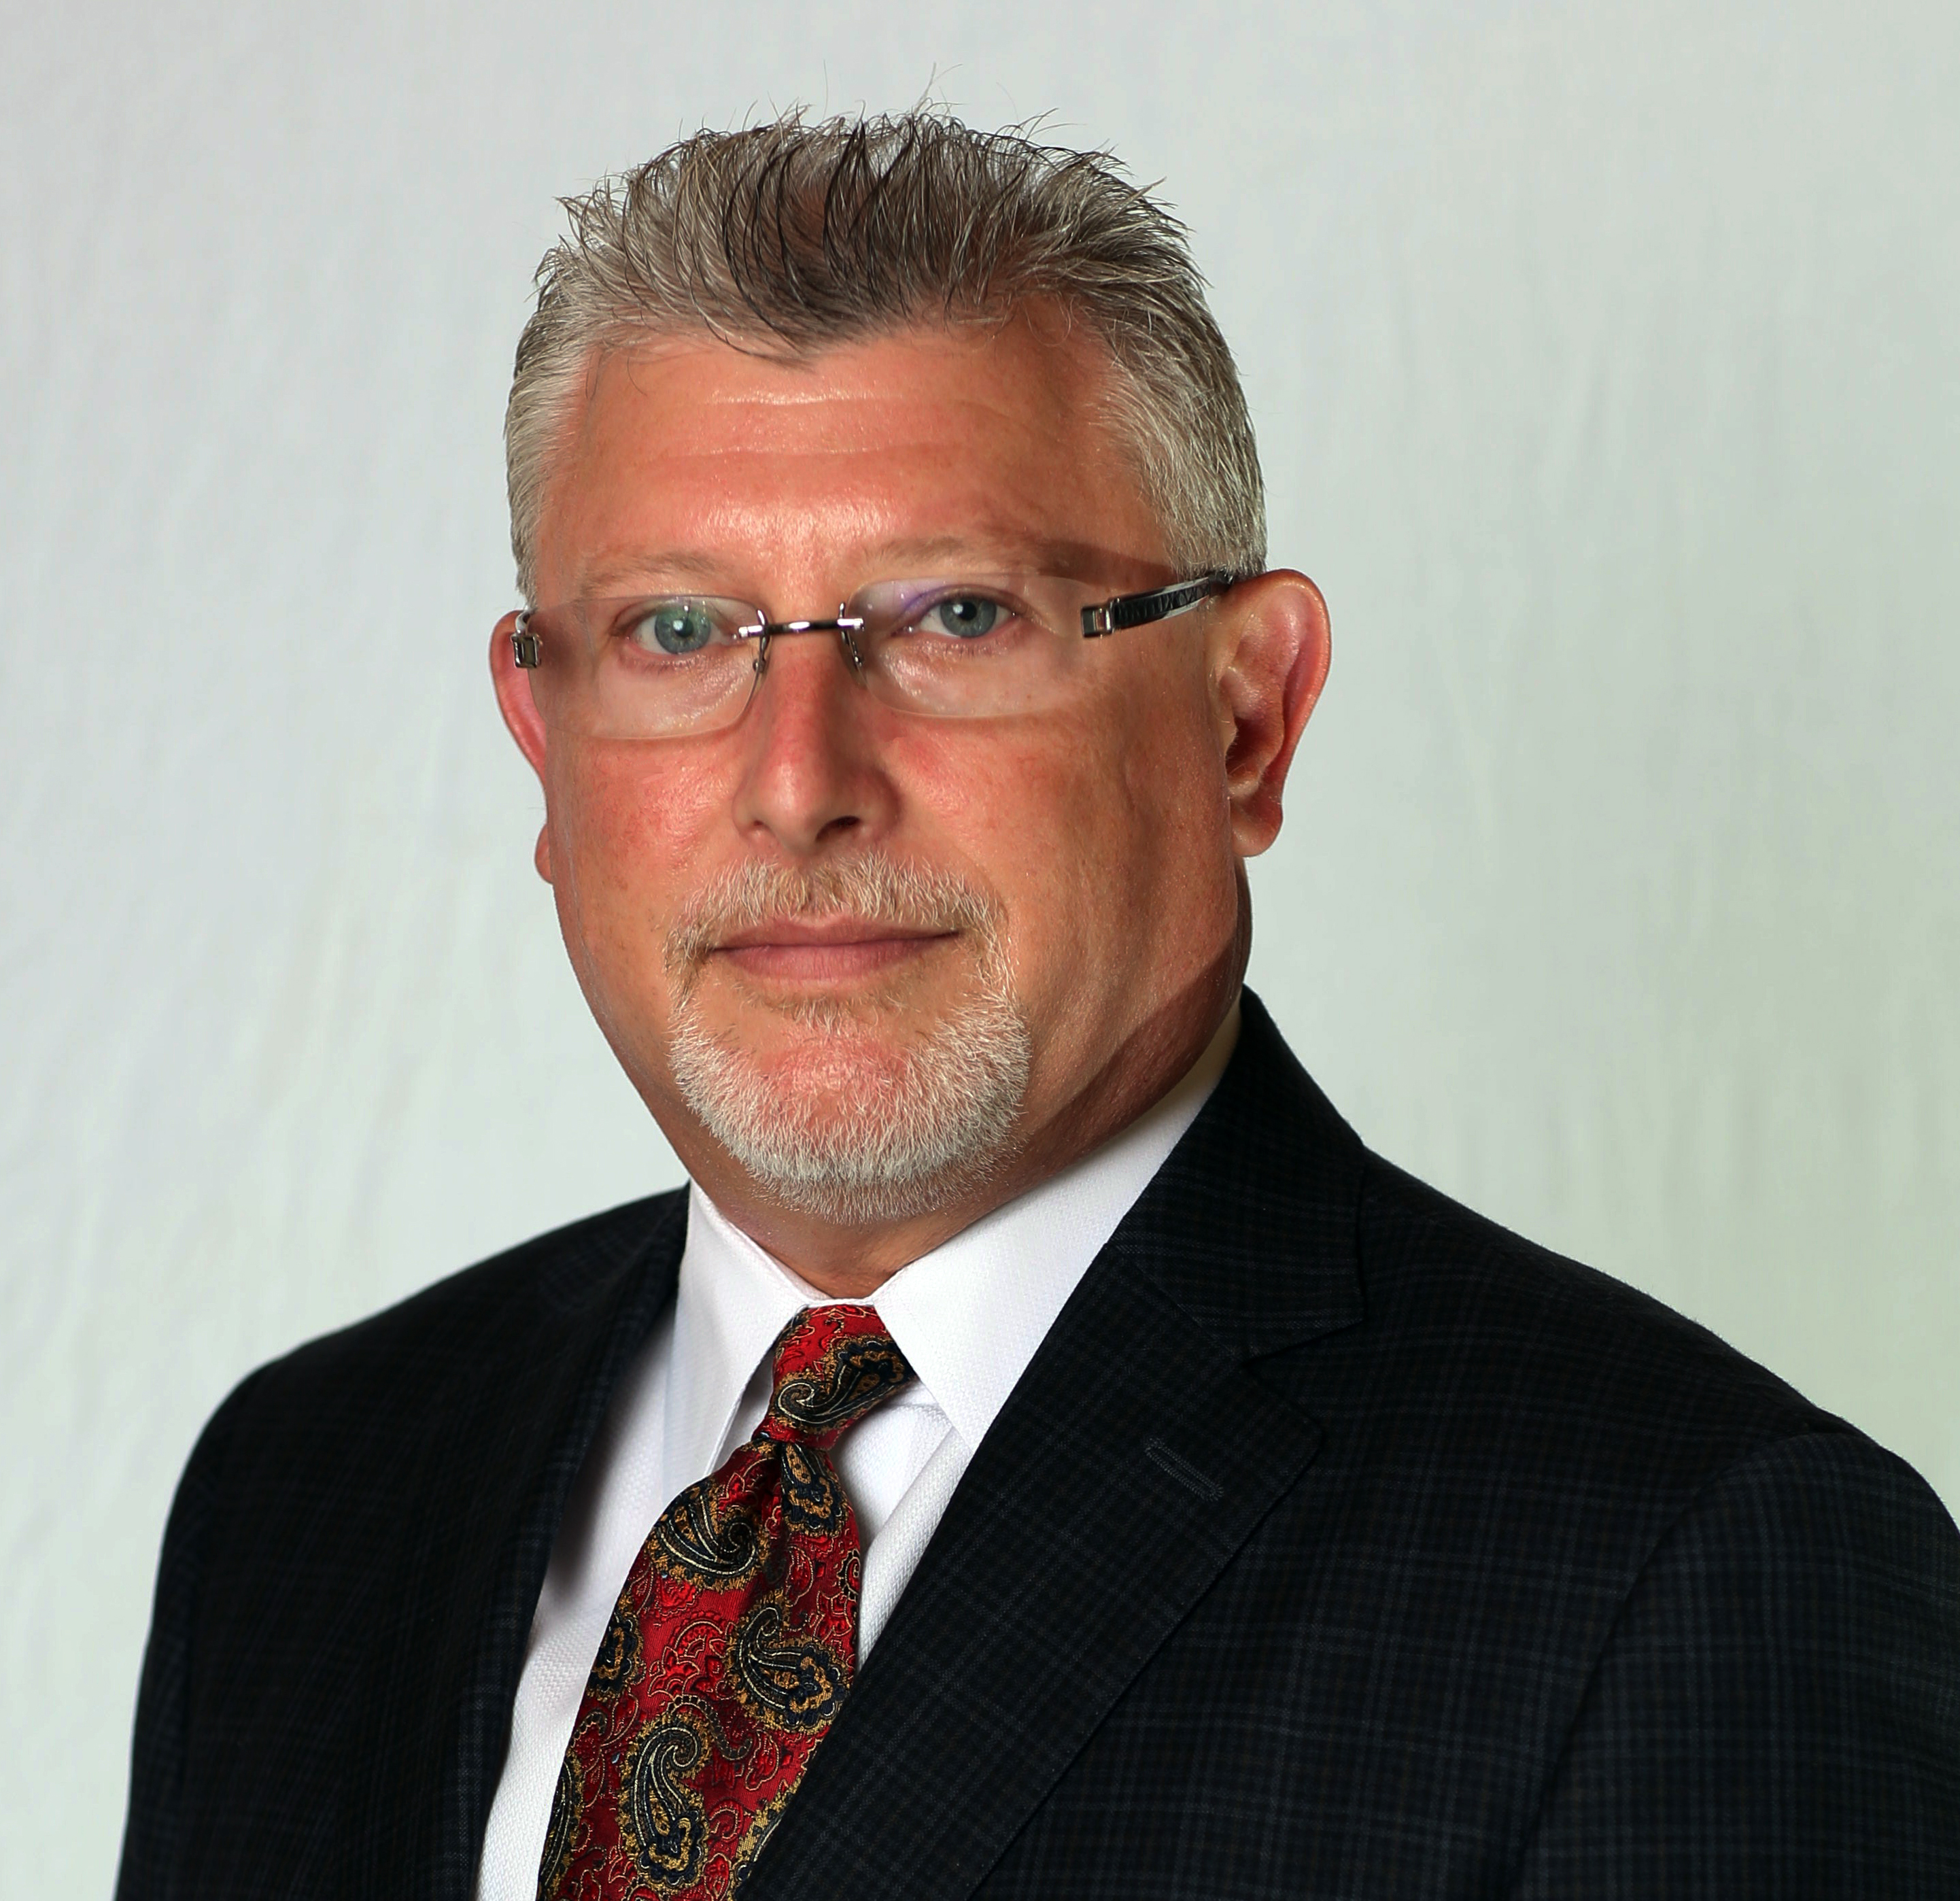 David I. Katz, AAMS®'s advisor photo